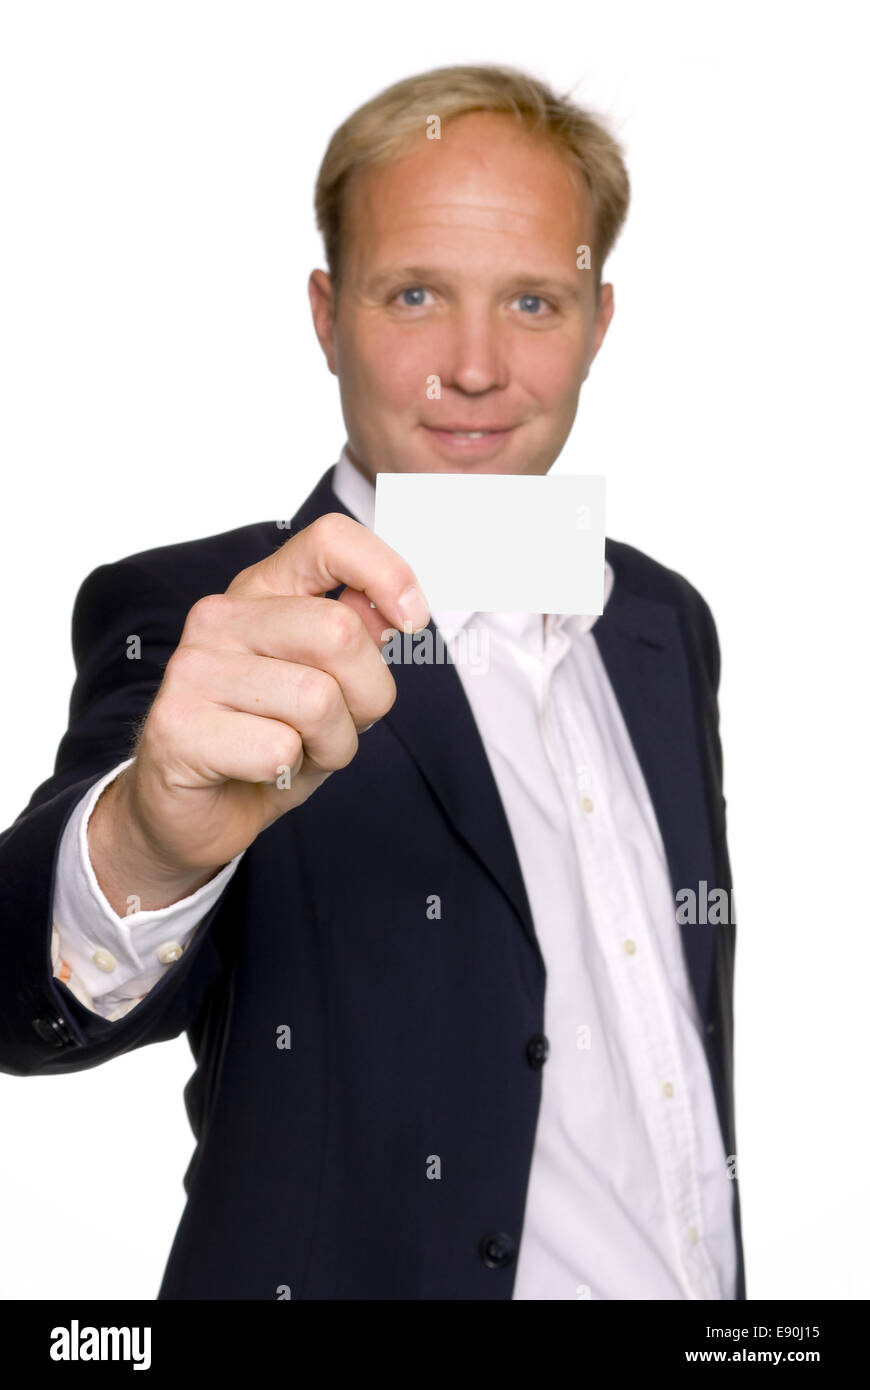 business man - Stock Image